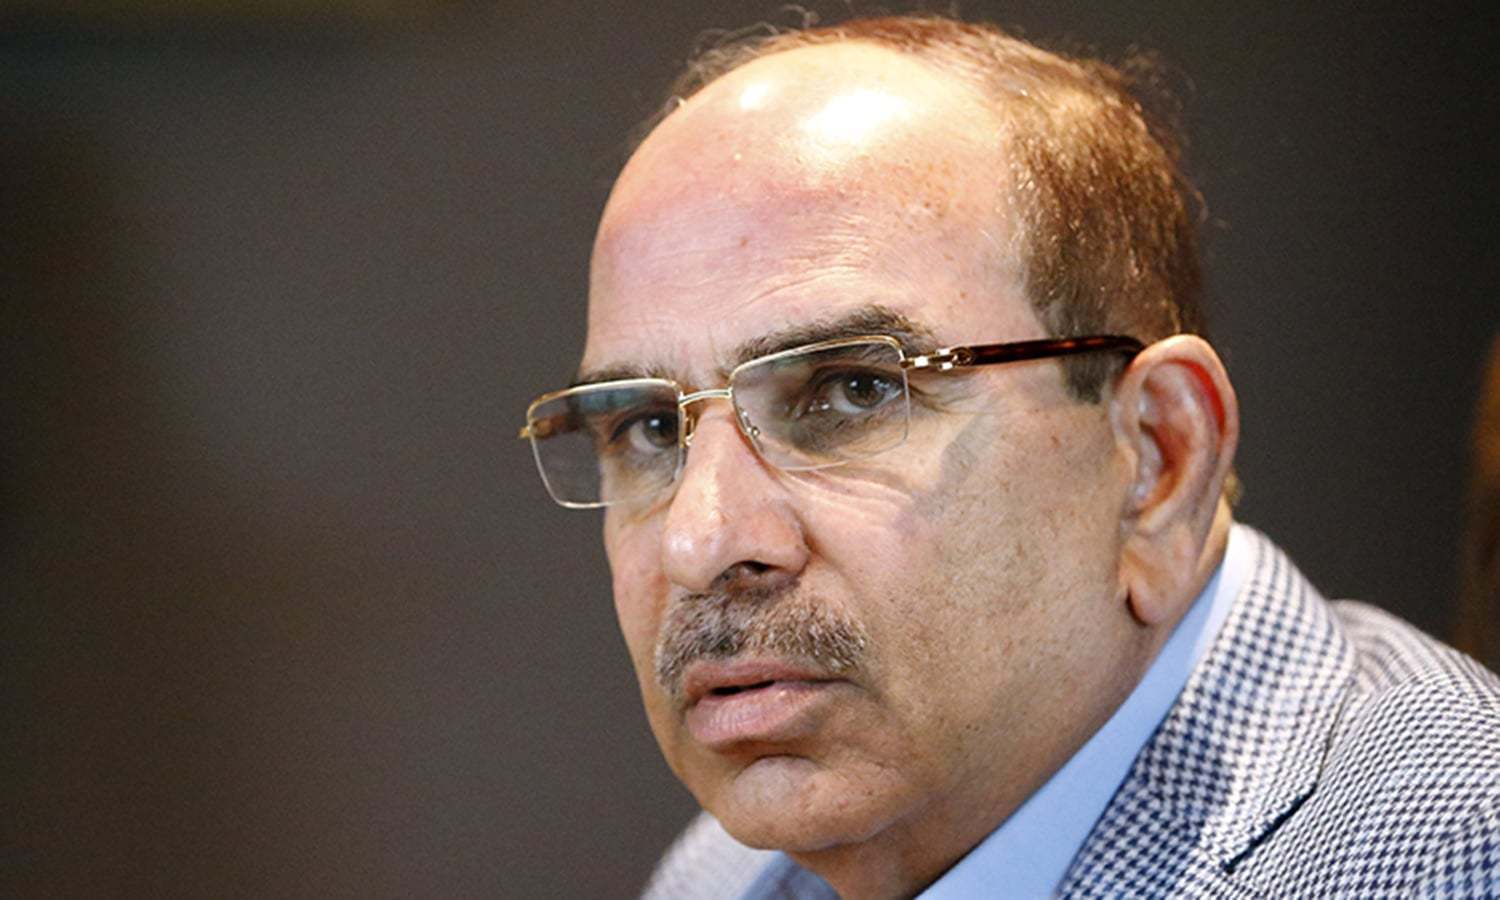 A day earlier, Malik Riaz tweeted that he sold his UK property in order to fund the Supreme Court-mandated offer in the Bahria Town Karachi case. — Reuters/File